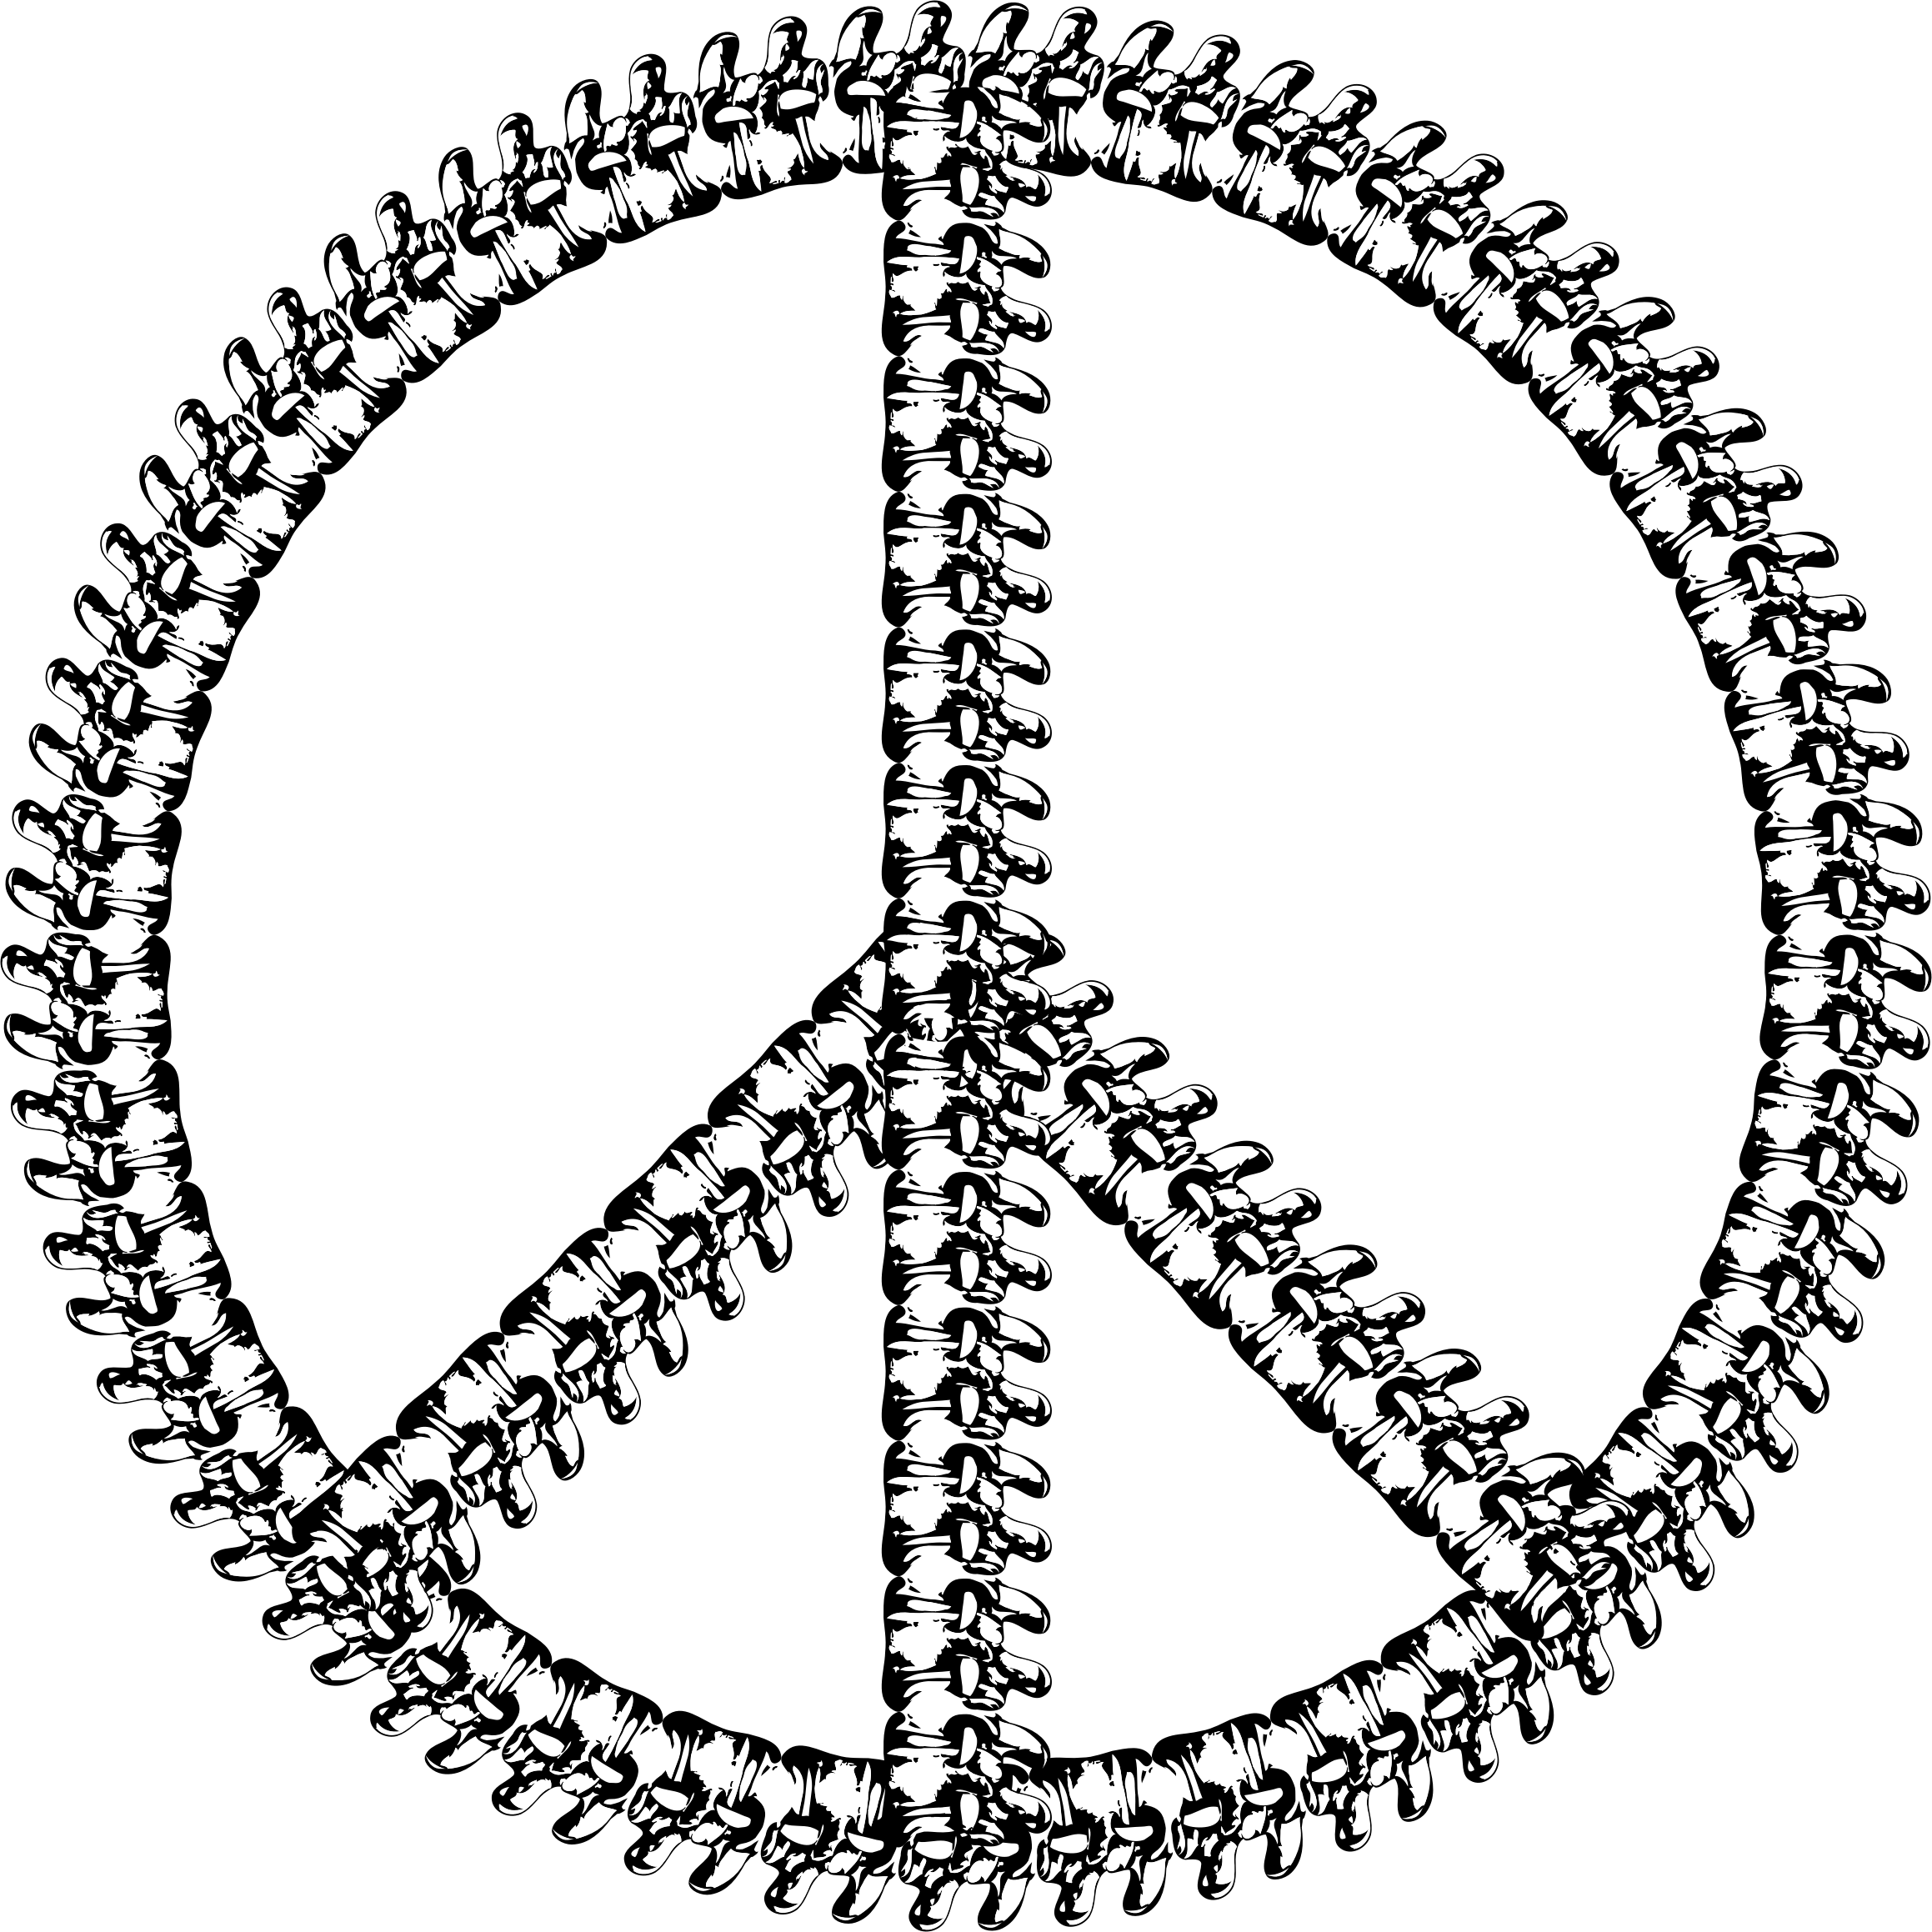 Vertebrae Peace Sign by GDJ